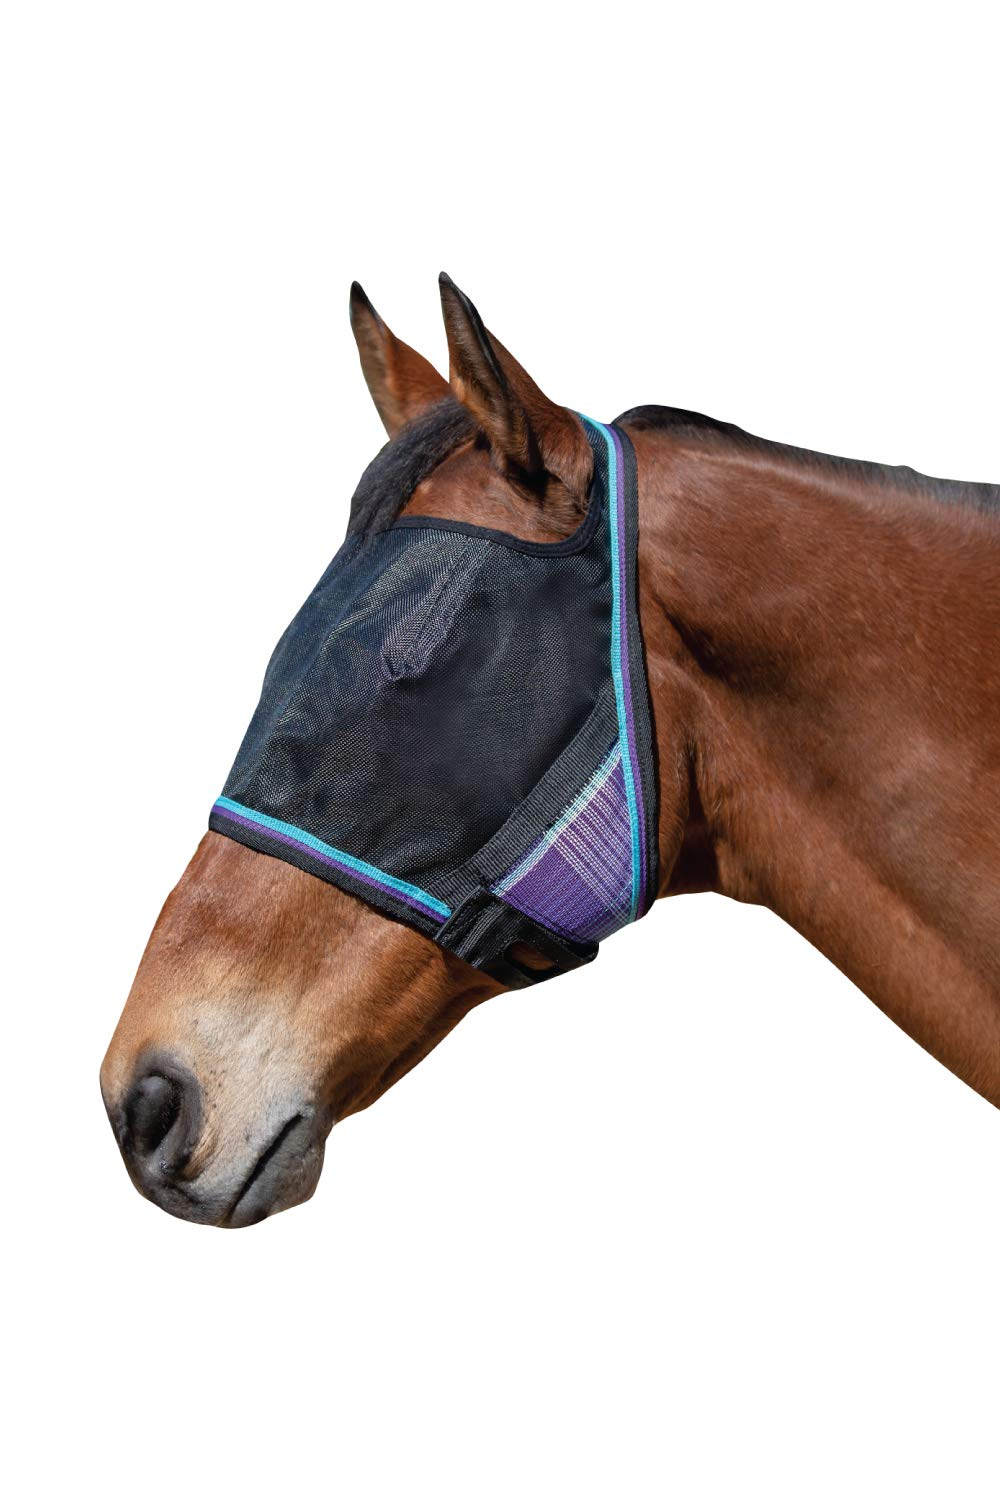 Kensington UViator Protective Fly Mask - Newest UV Solar Screen Protection with a 90% UV Rating - Double Locking CatchMask Fasteners - Non Heat Transferring Fabric (Lavender Mint, Large) by Kensington Protective Products